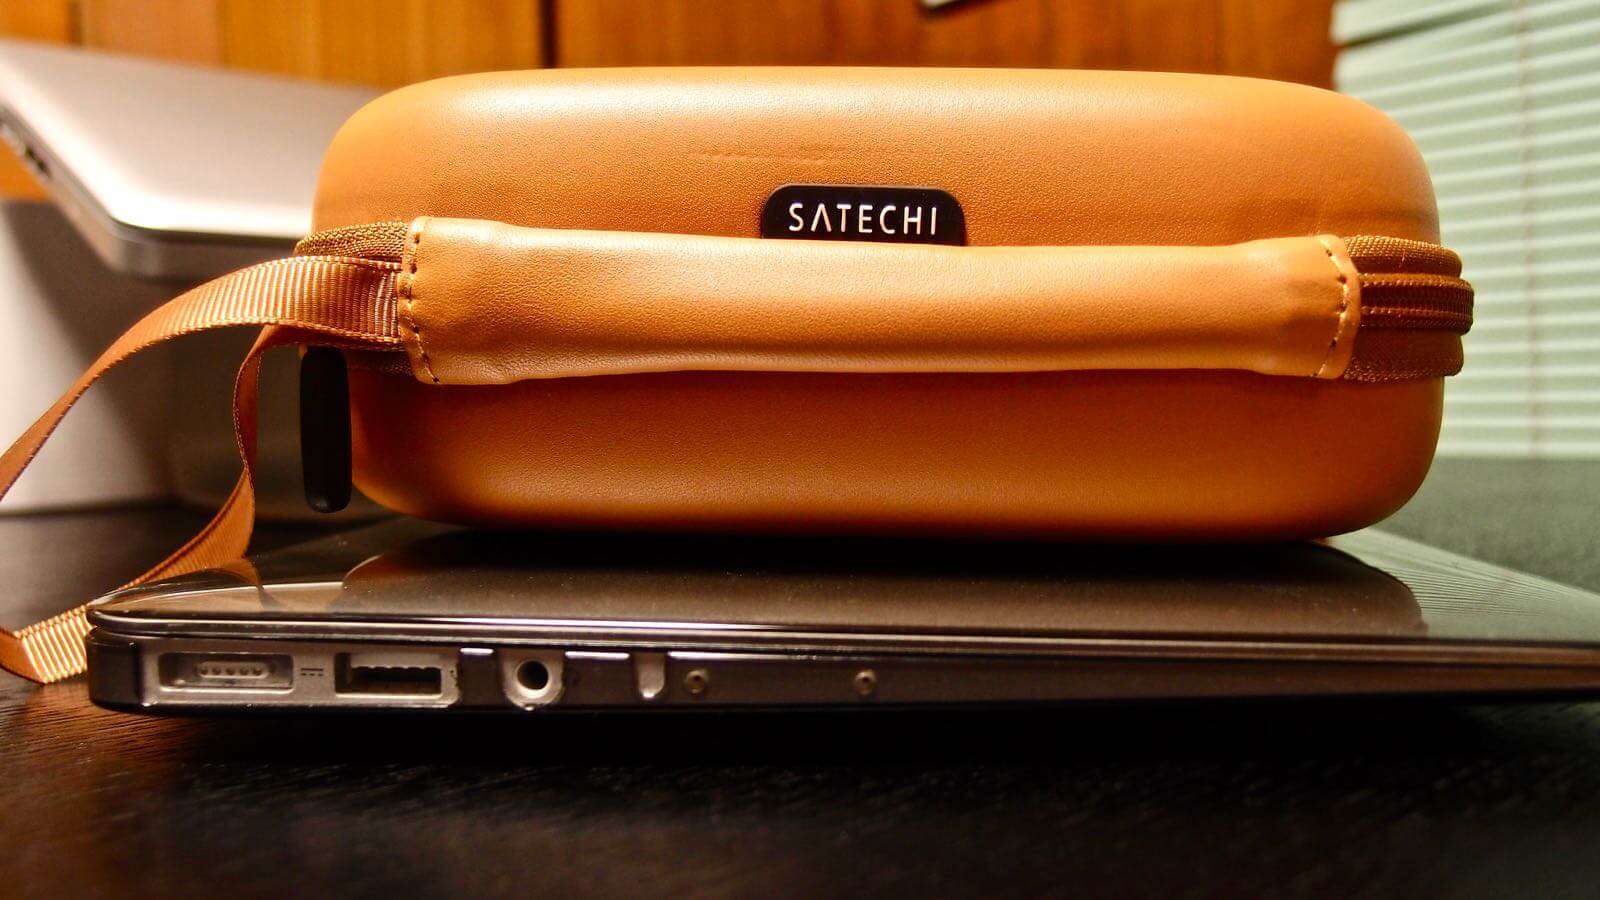 0159 Satechi s Headphones Hard Case Review 02